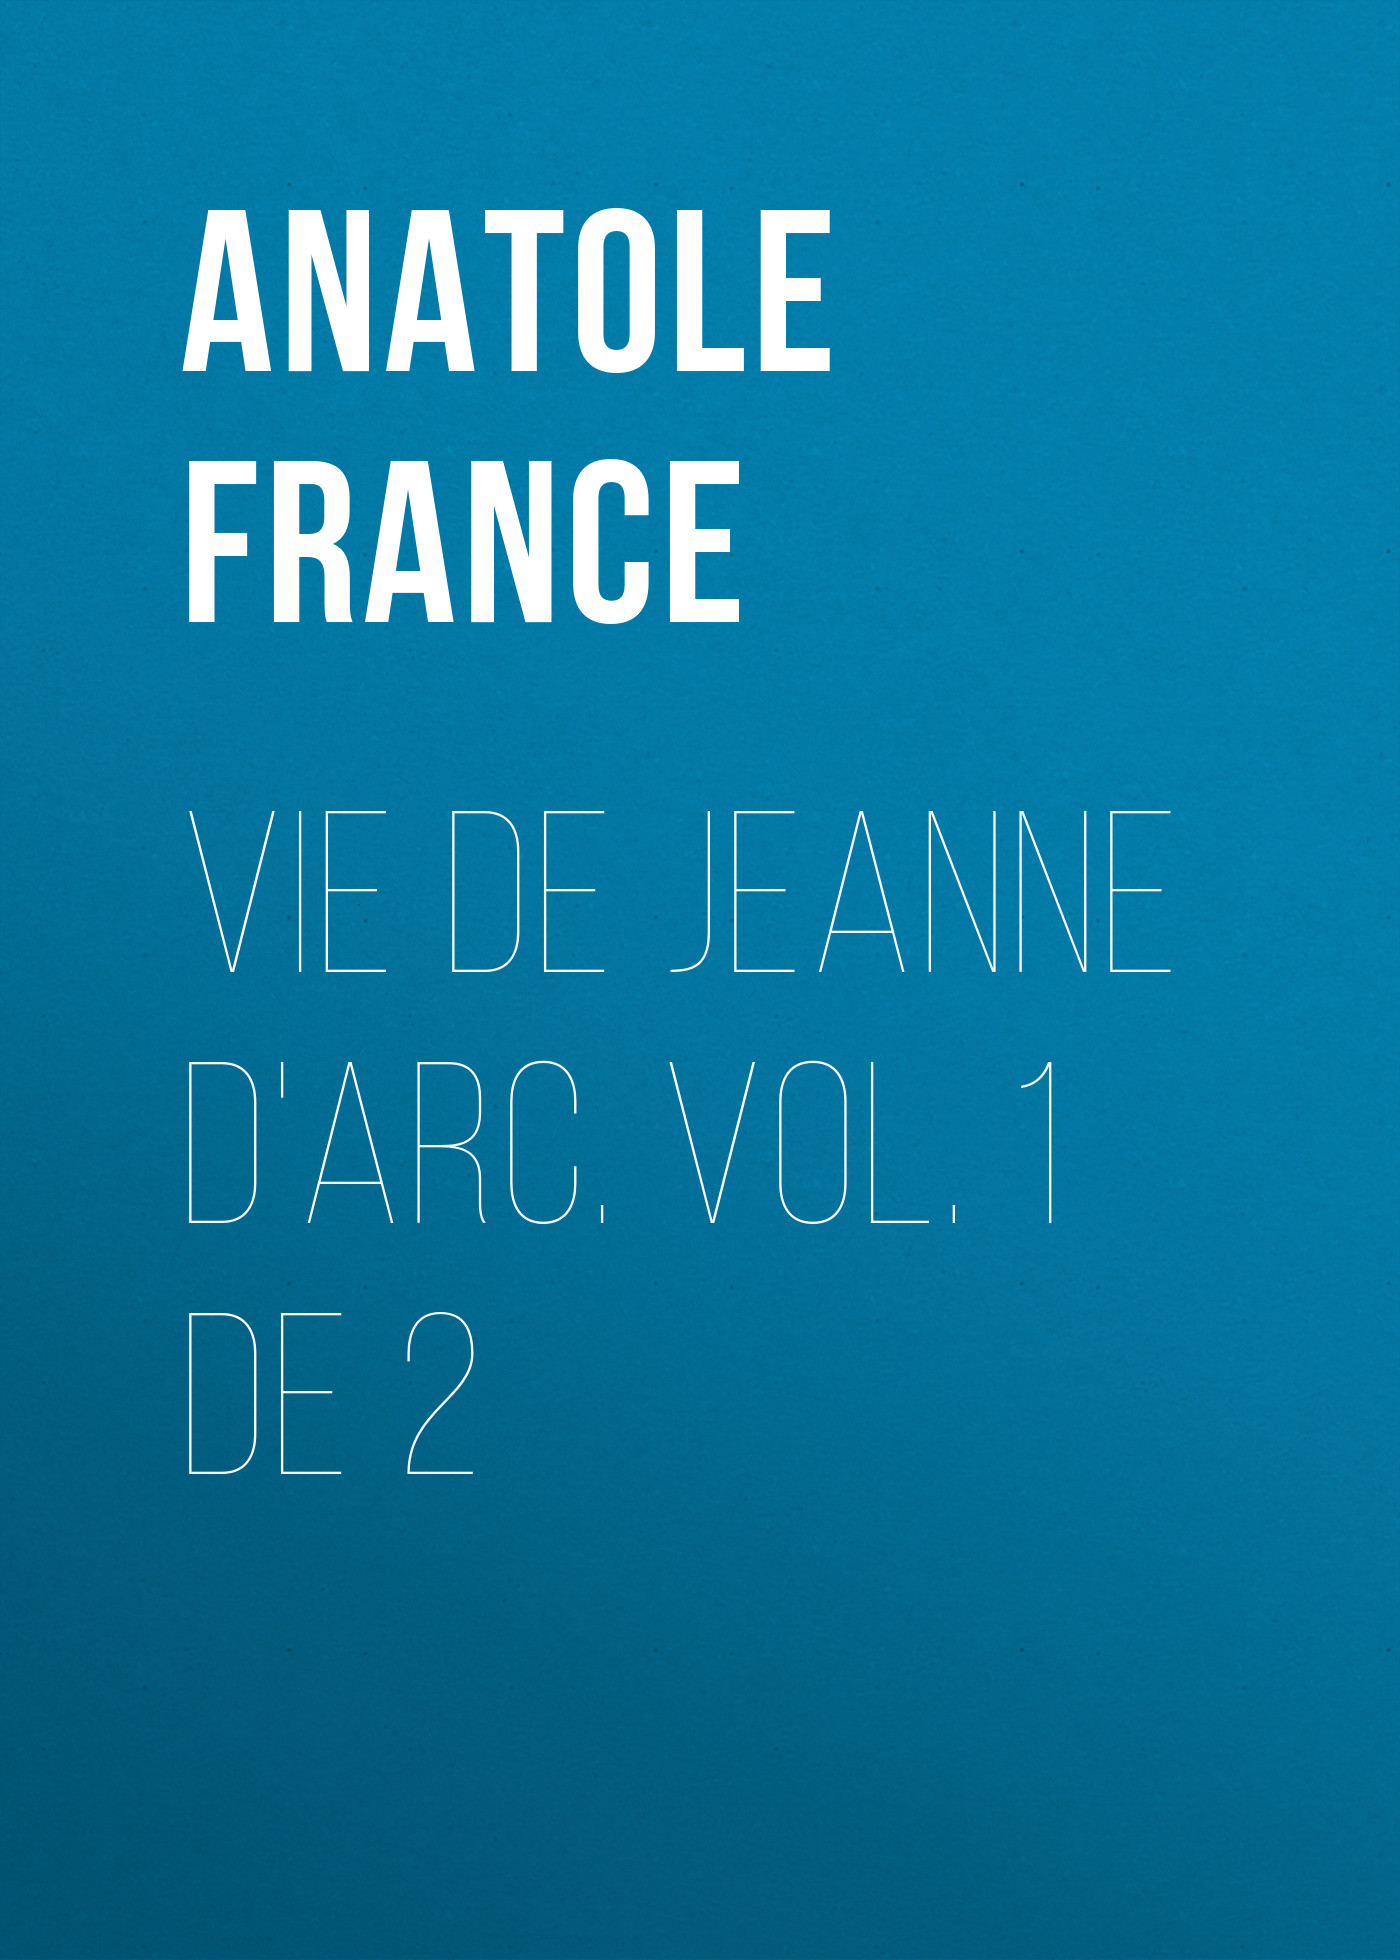 Anatole France Vie de Jeanne d'Arc. Vol. 1 de 2